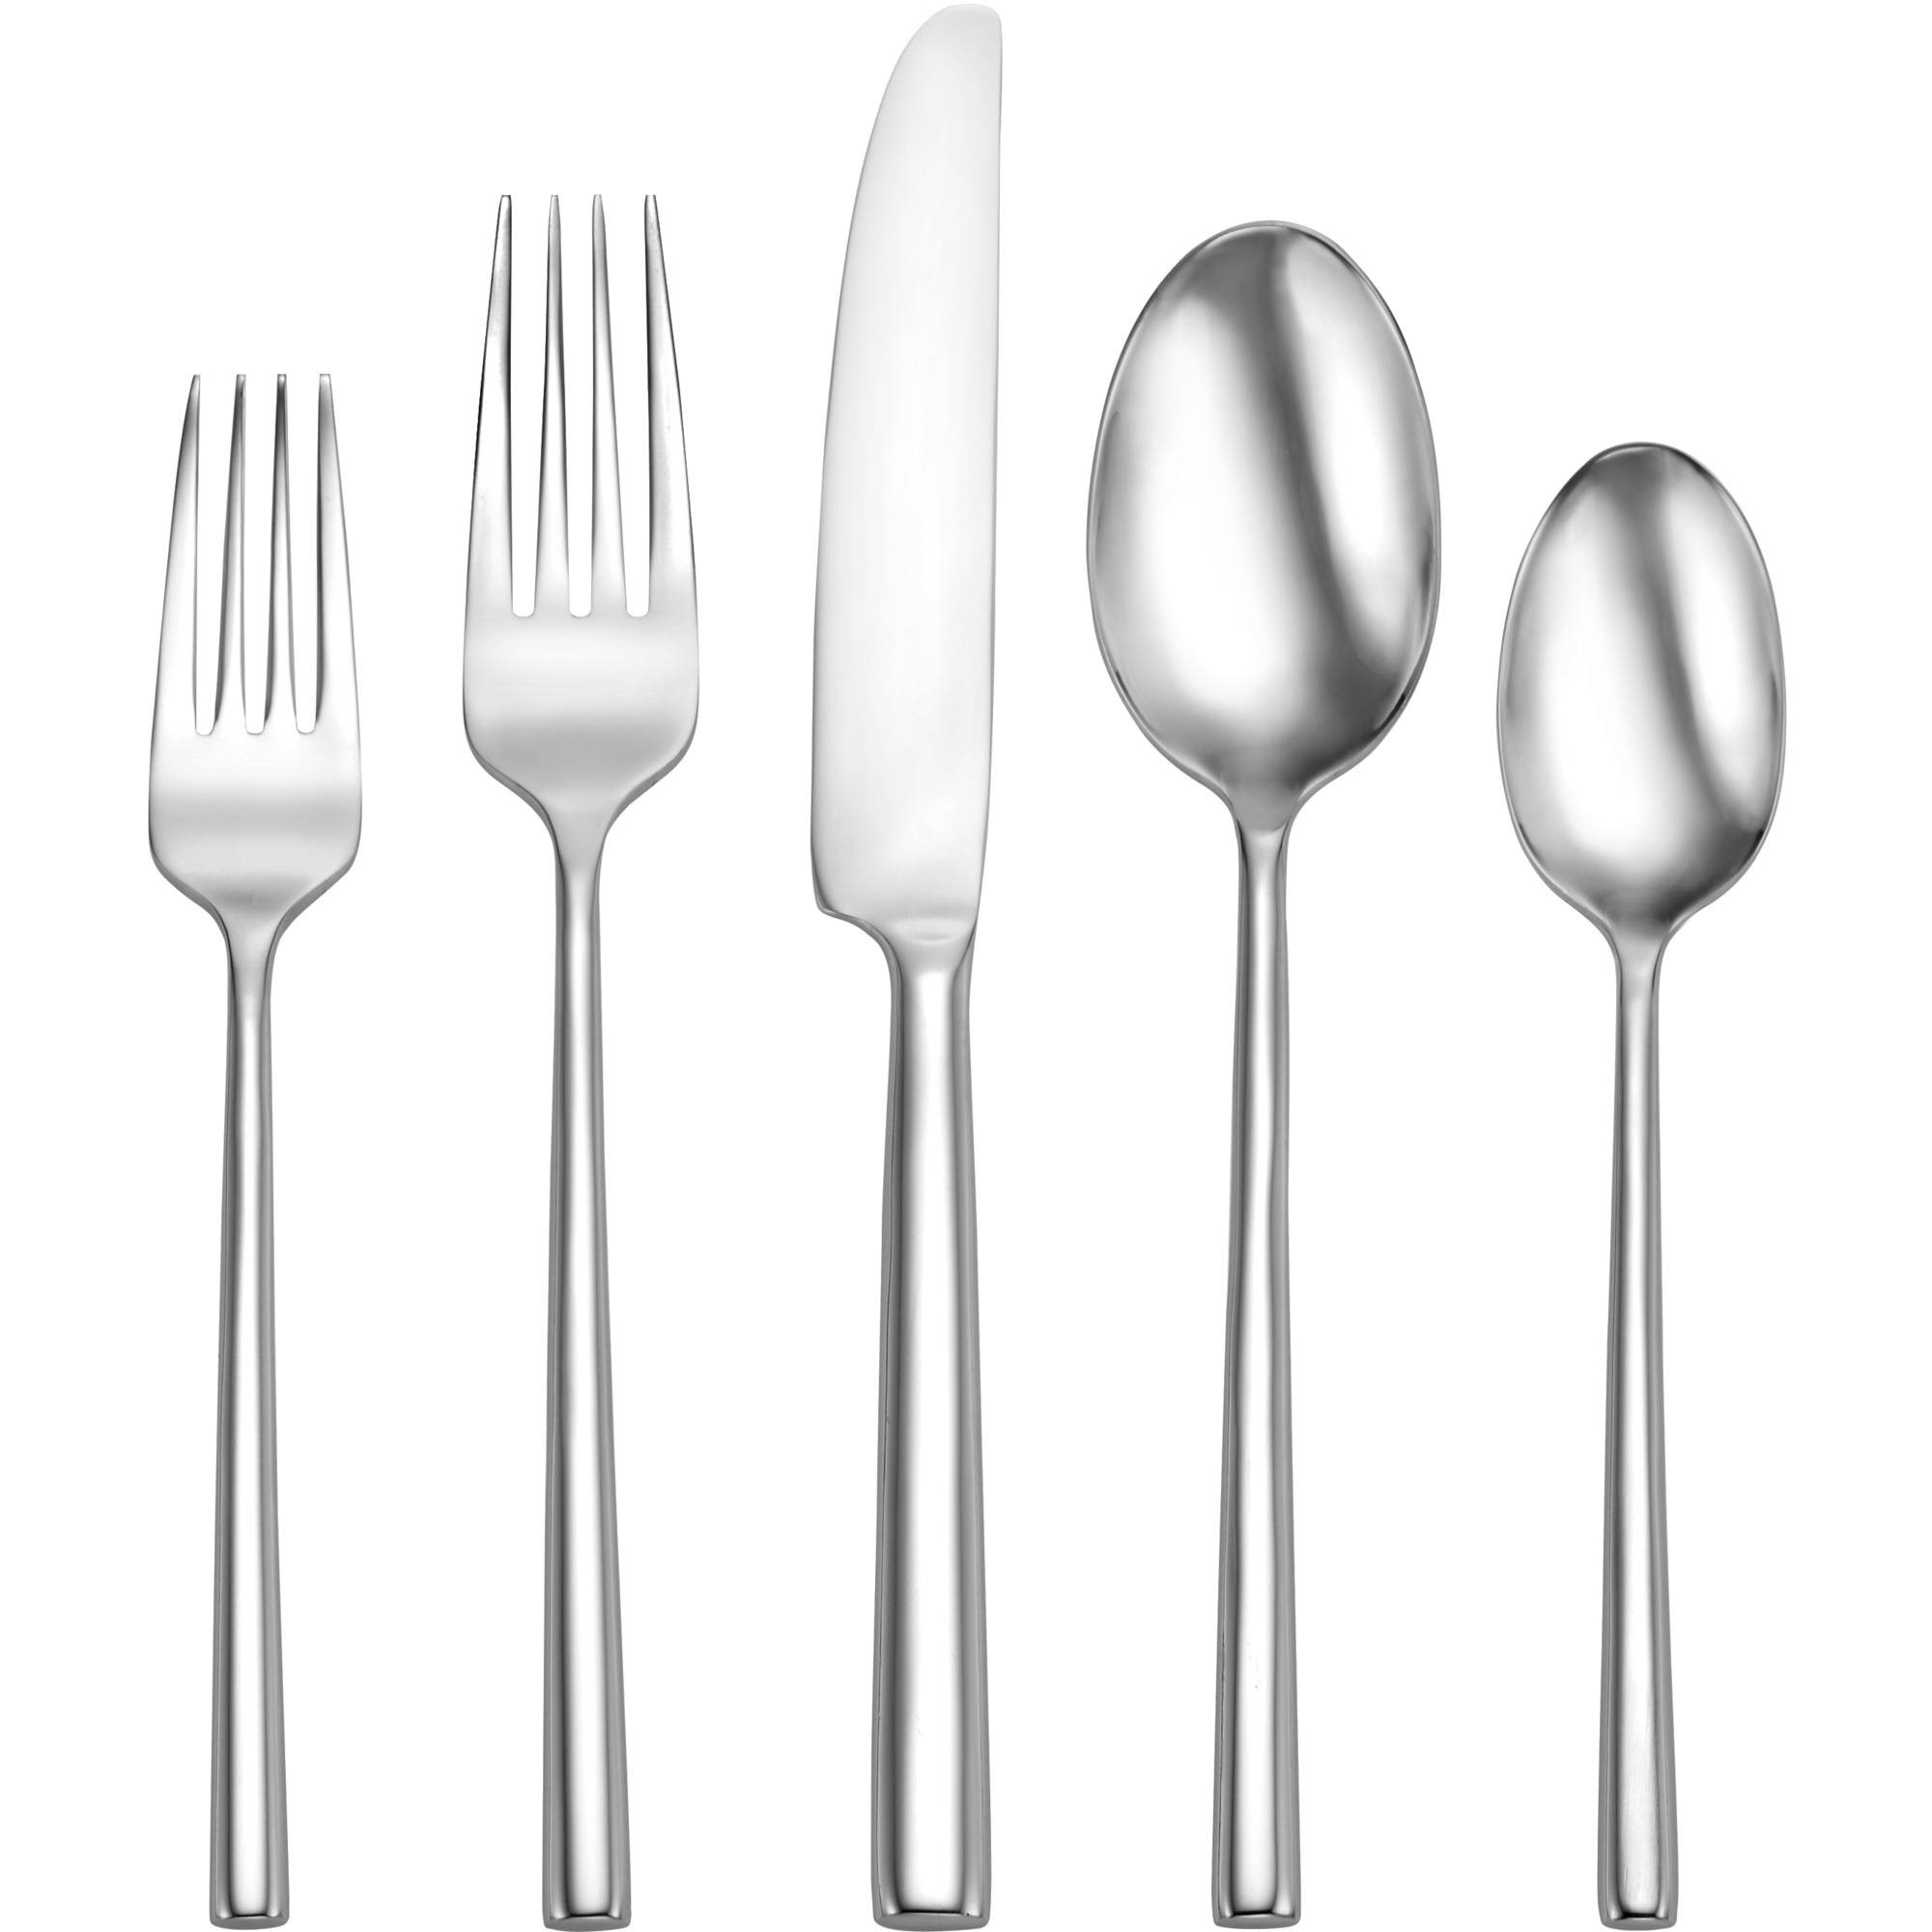 Discount Stainless Flatware Oneida Porter Stainless Steel Flatware Set 20 Piece